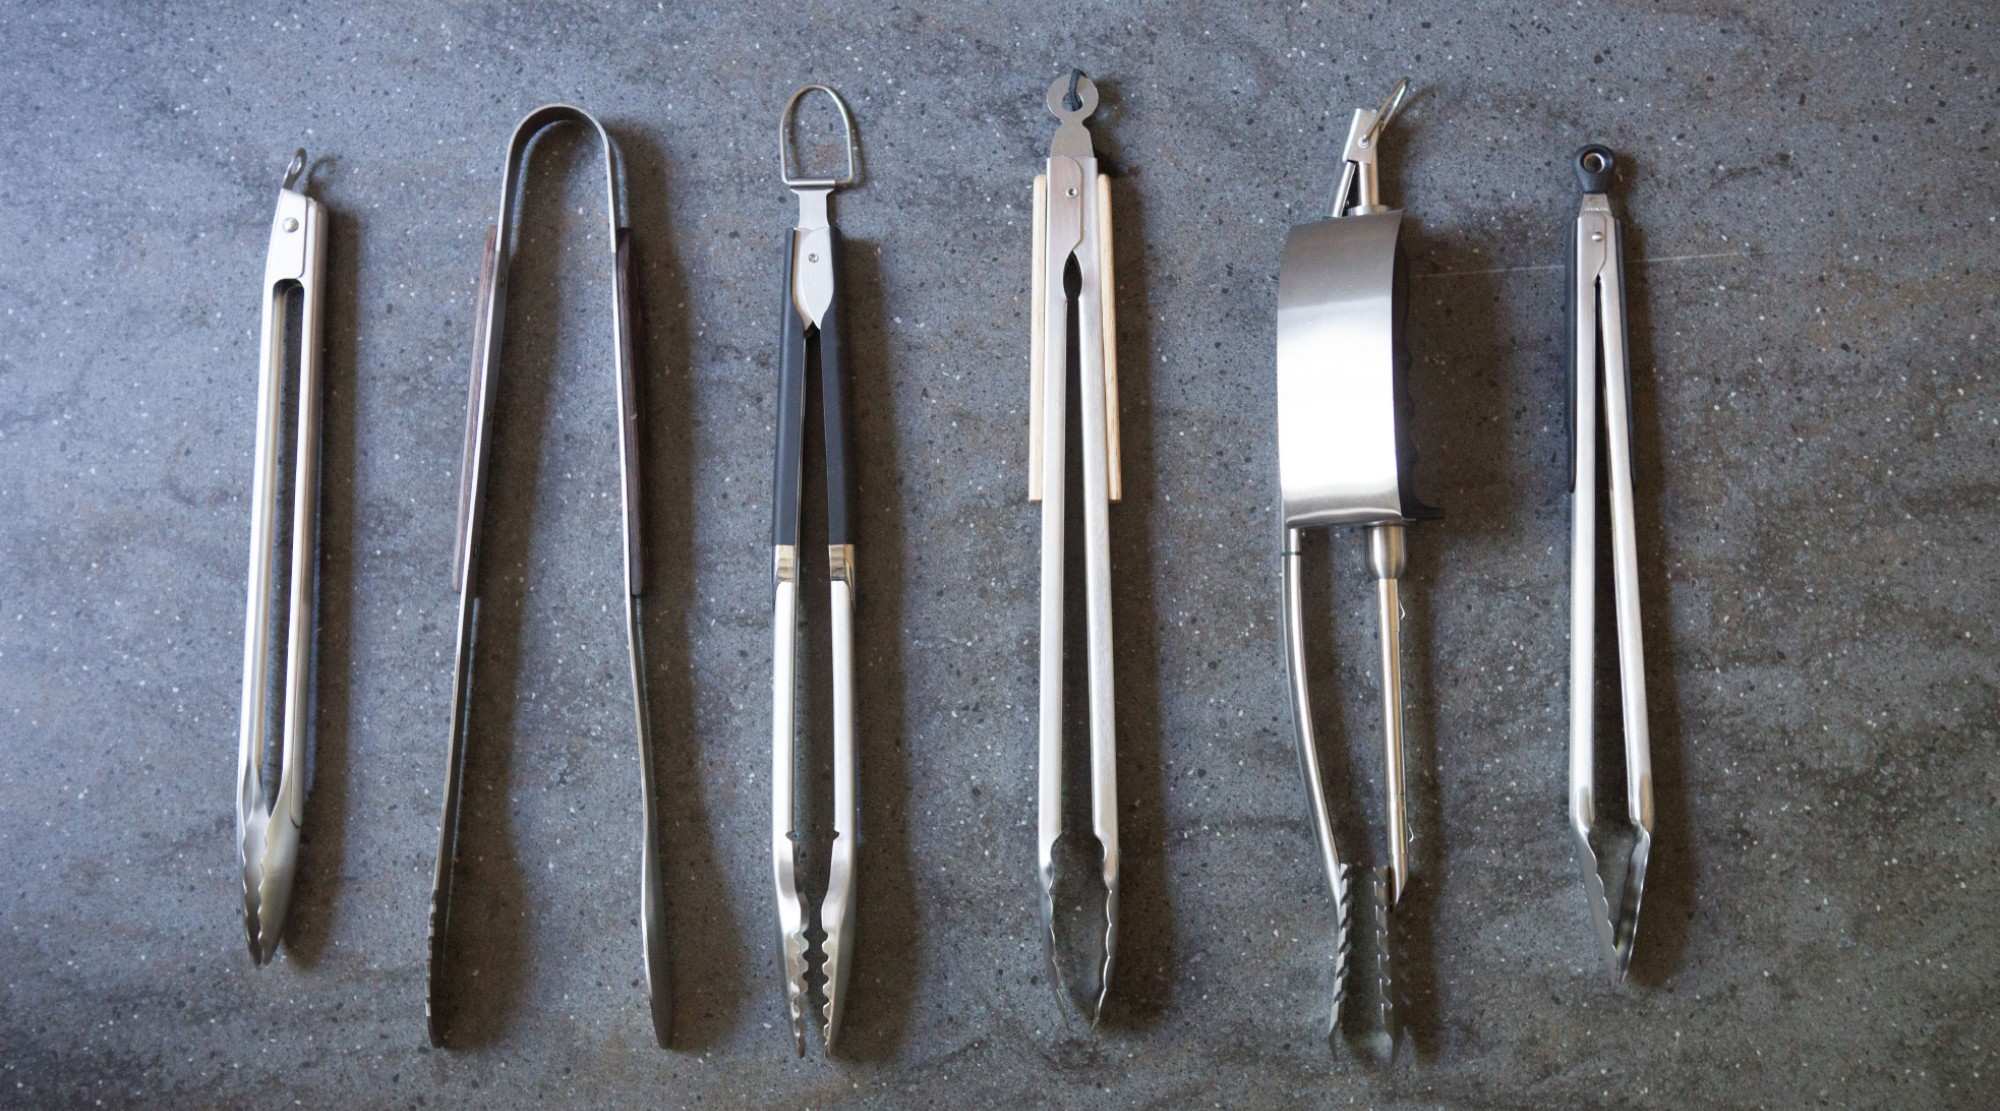 grill-tongs-credit-kevin-white-atk-LEDE.jpg